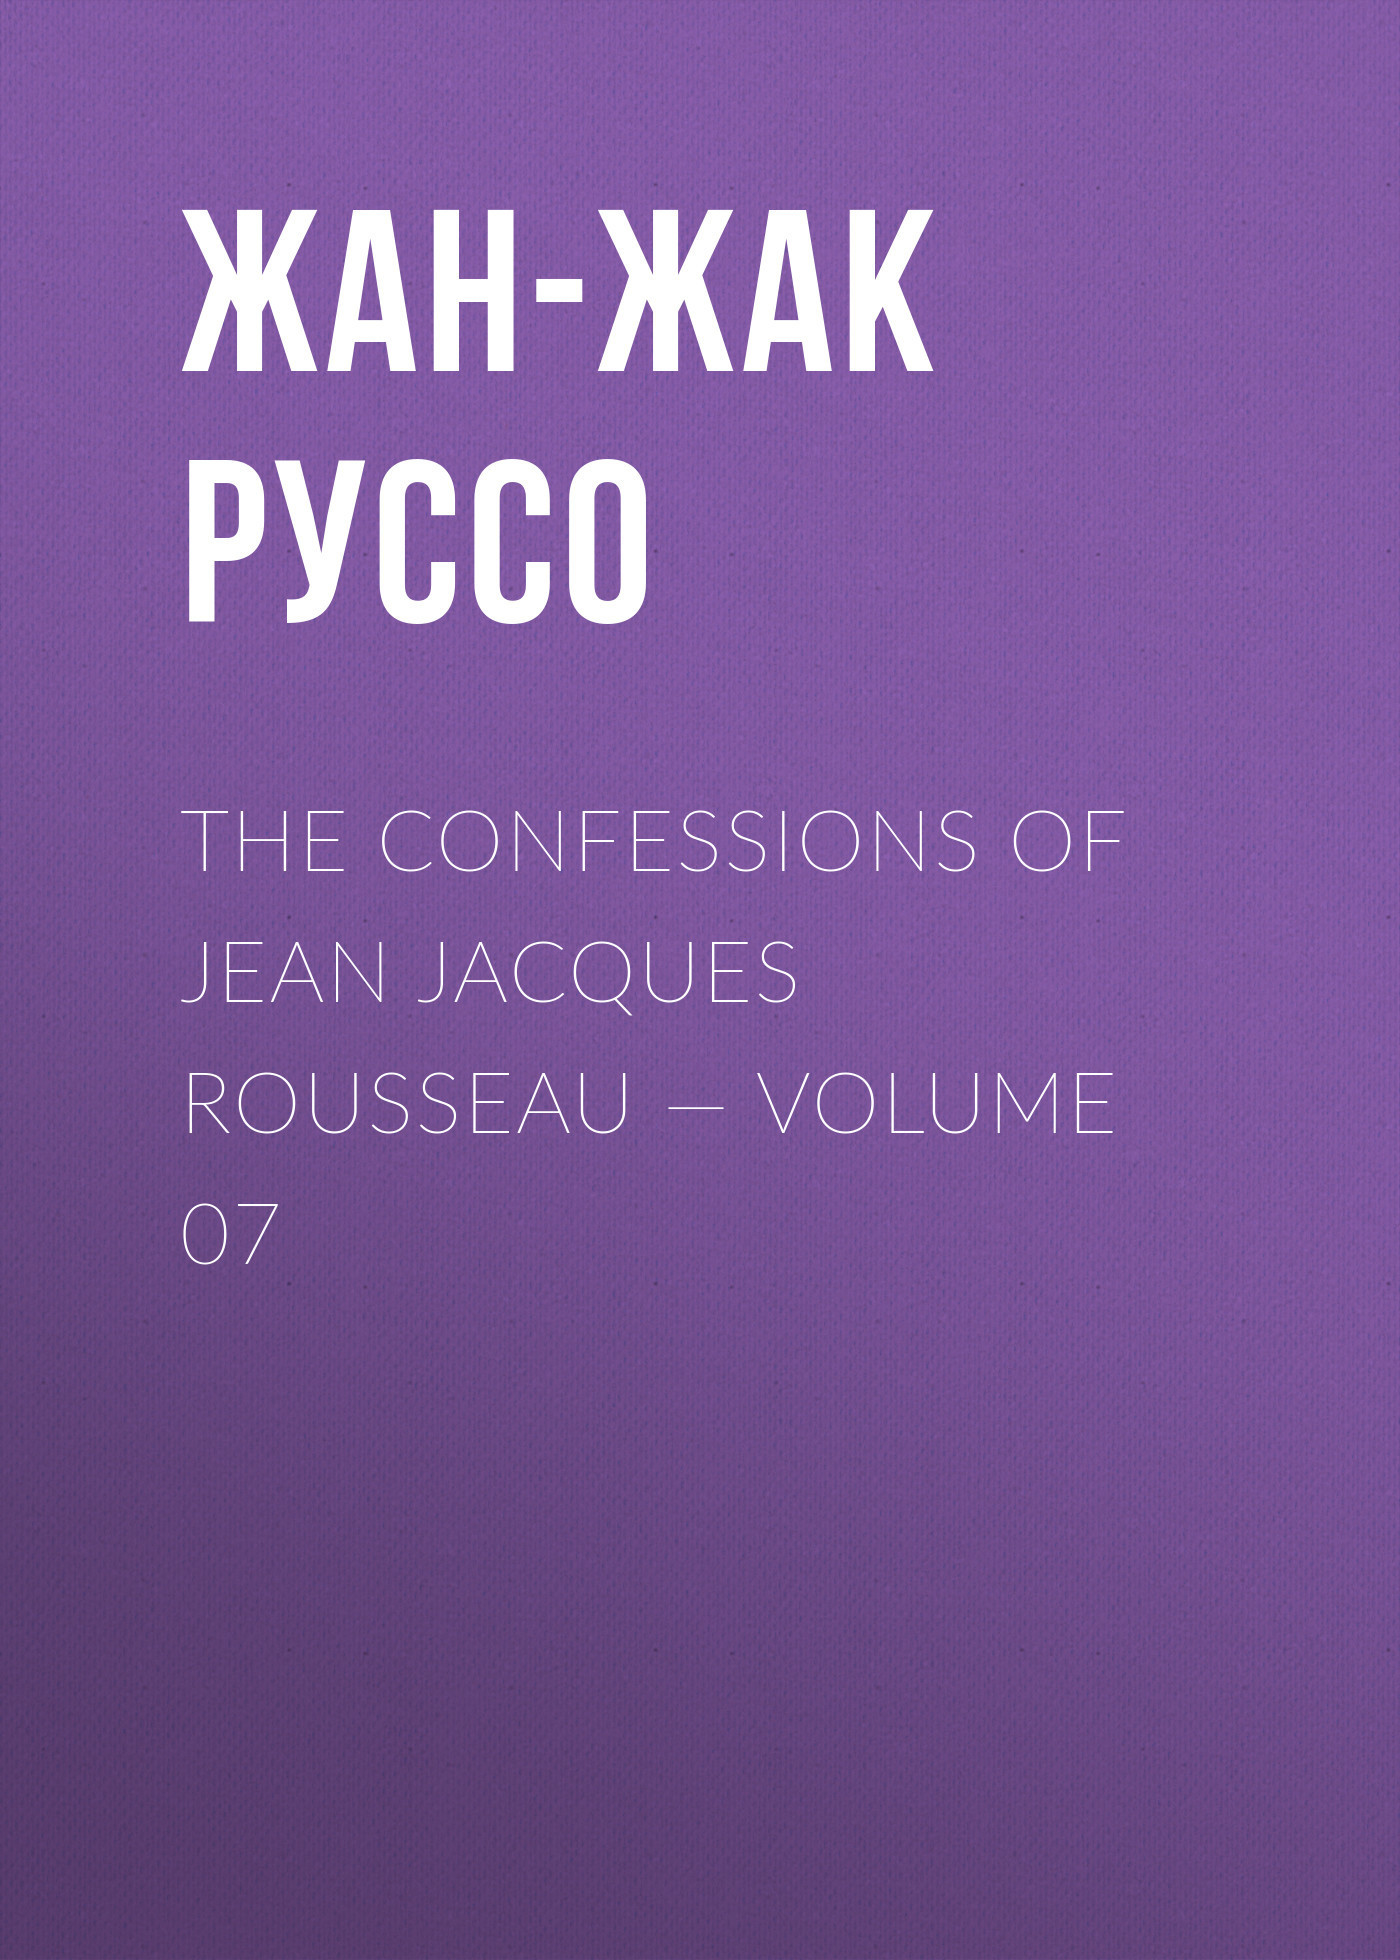 Жан-Жак Руссо The Confessions of Jean Jacques Rousseau — Volume 07 jean jacques rousseau mélanges t 7